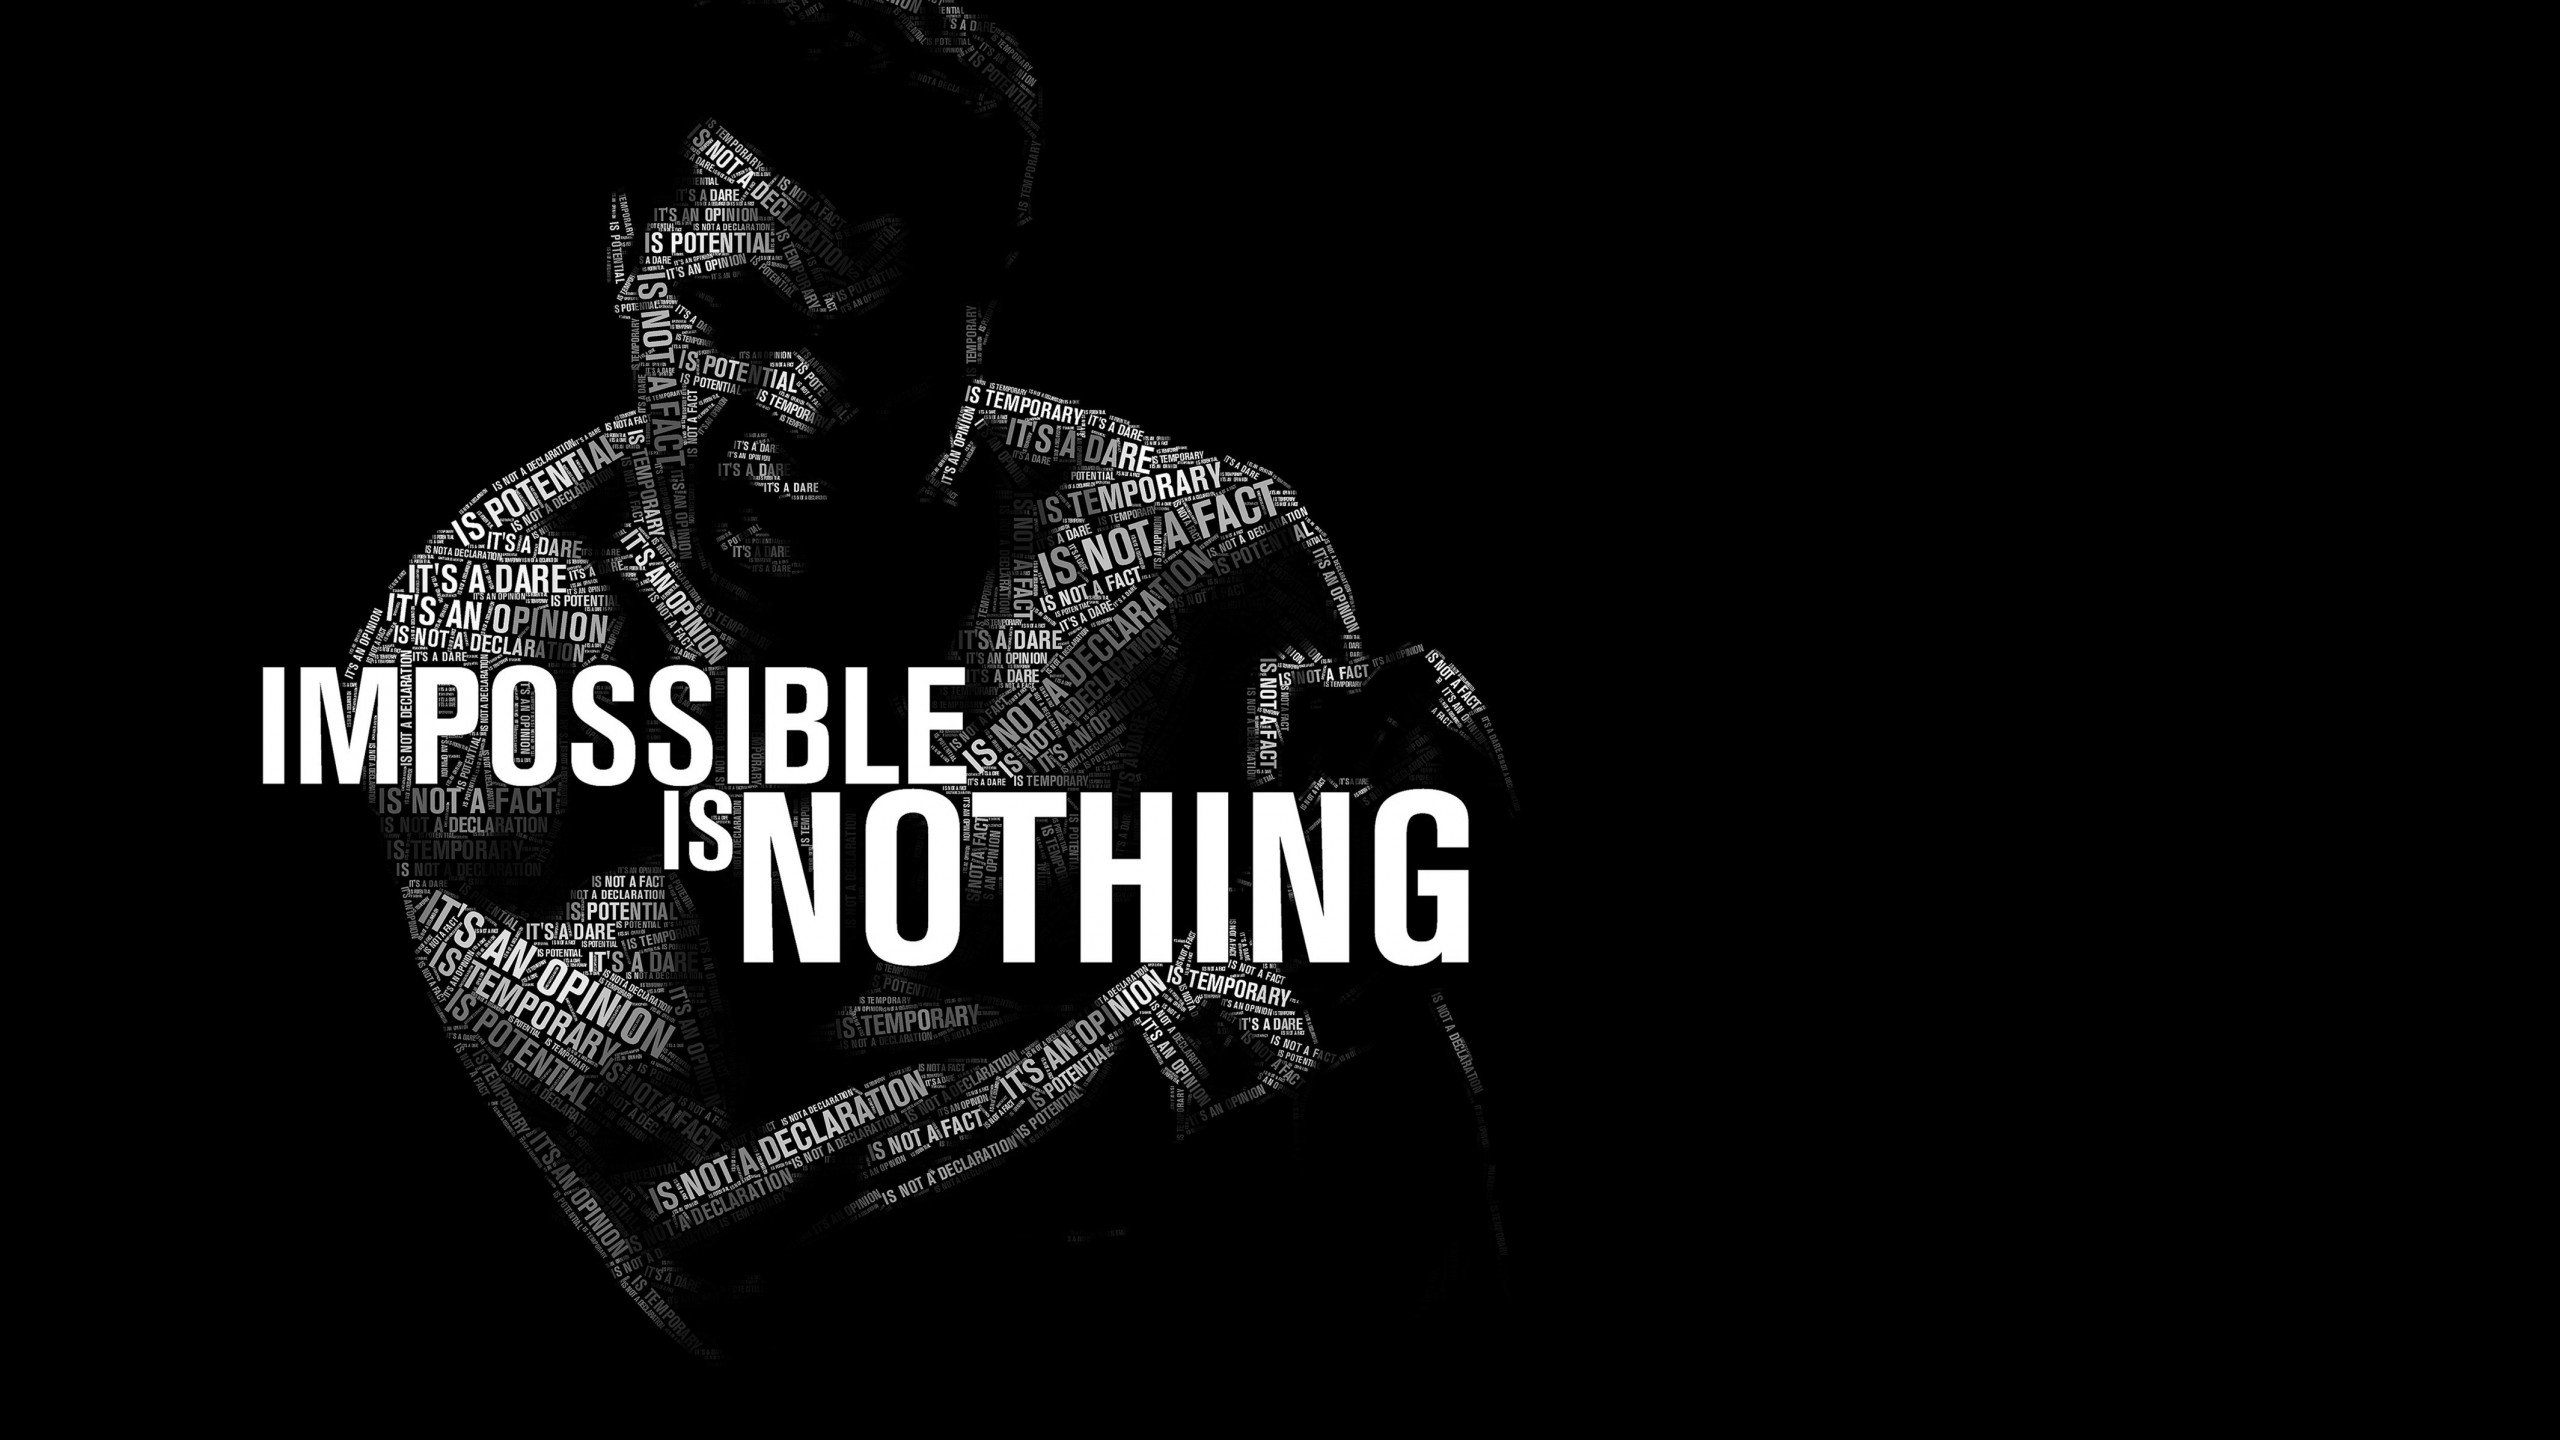 Impossible Is Nothing - Muhammad Ali Wallpaper for Desktop 2560x1440